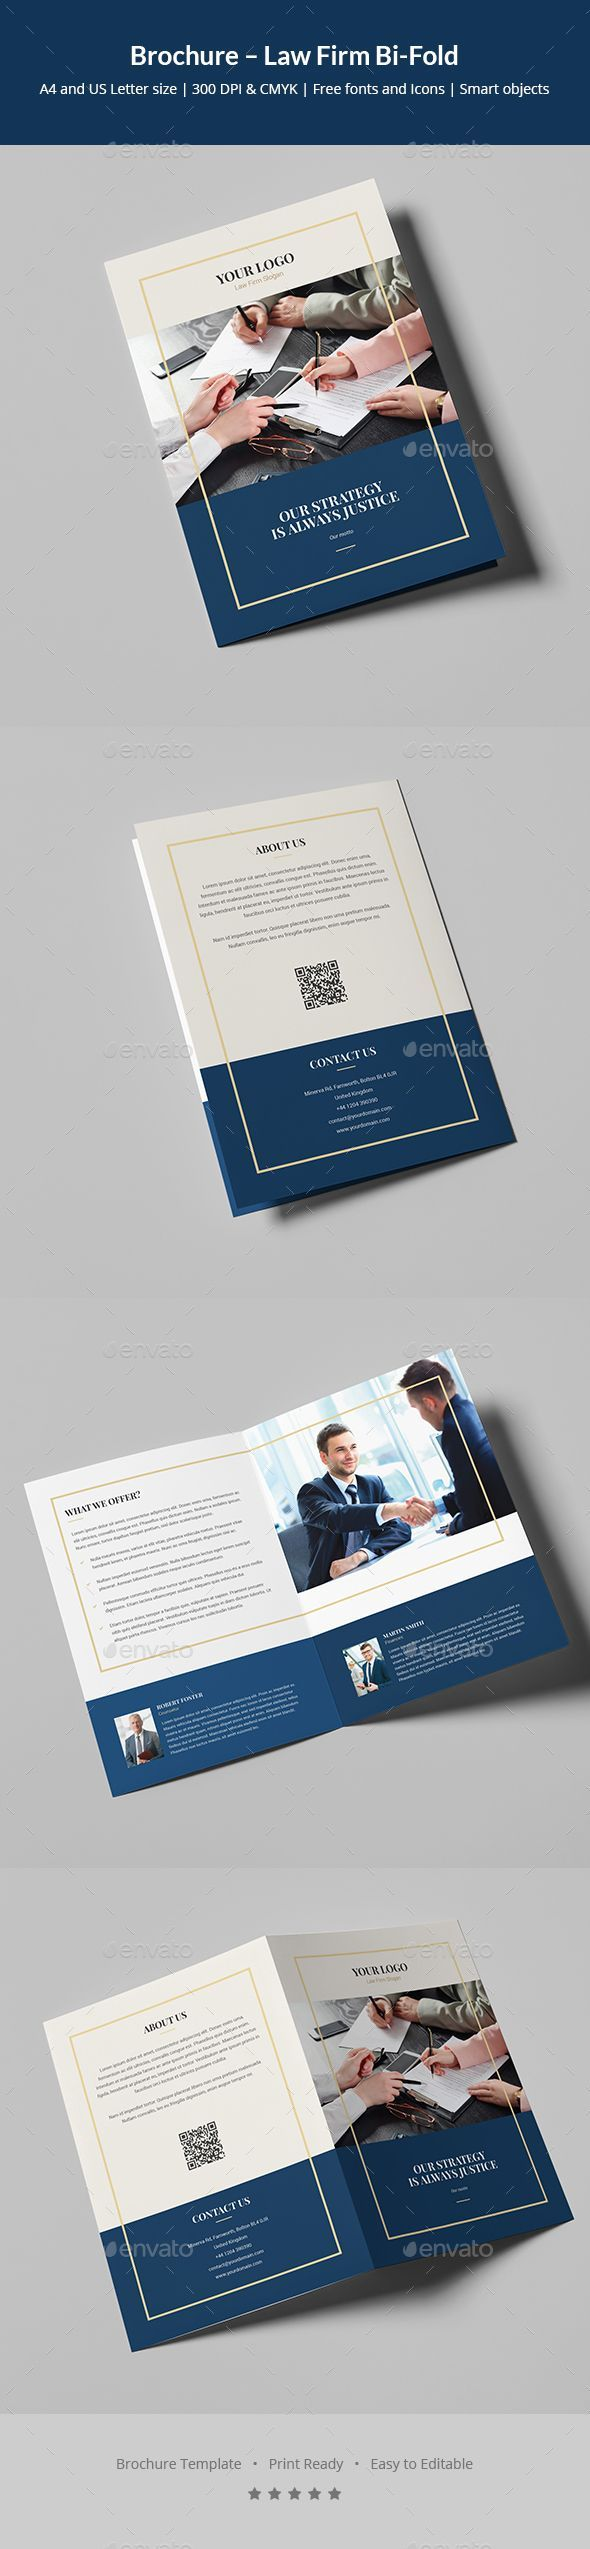 Law Firm Bi-Fold Brochure Template PSD - A4 and US Letter Size #FinanceBrochure